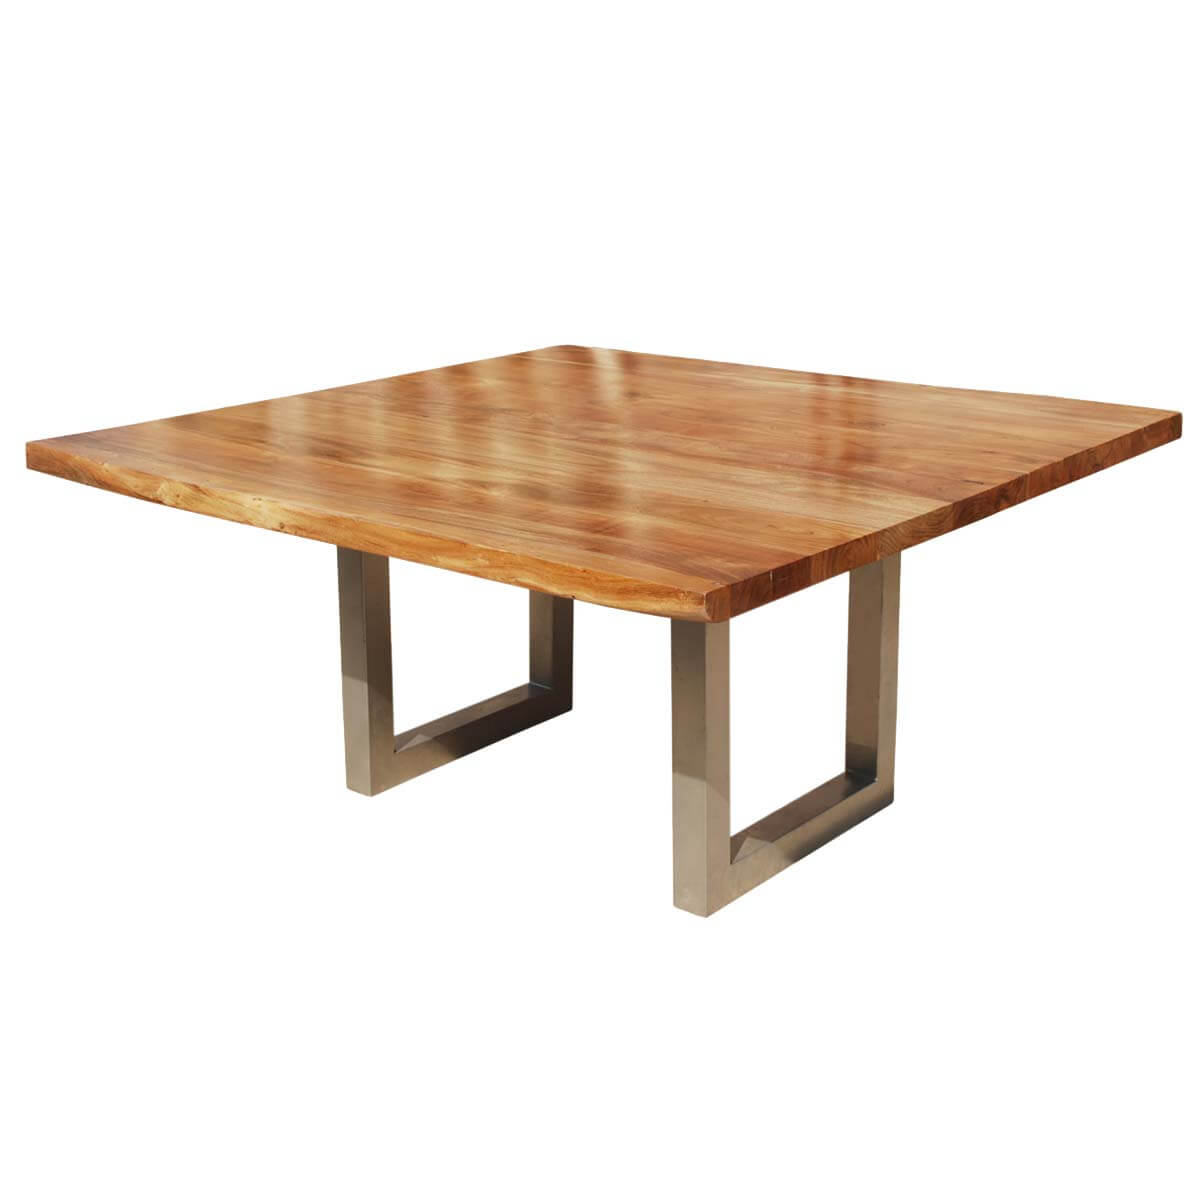 moab square acacia wood live edge rustic dining table - Square Wood Dining Table